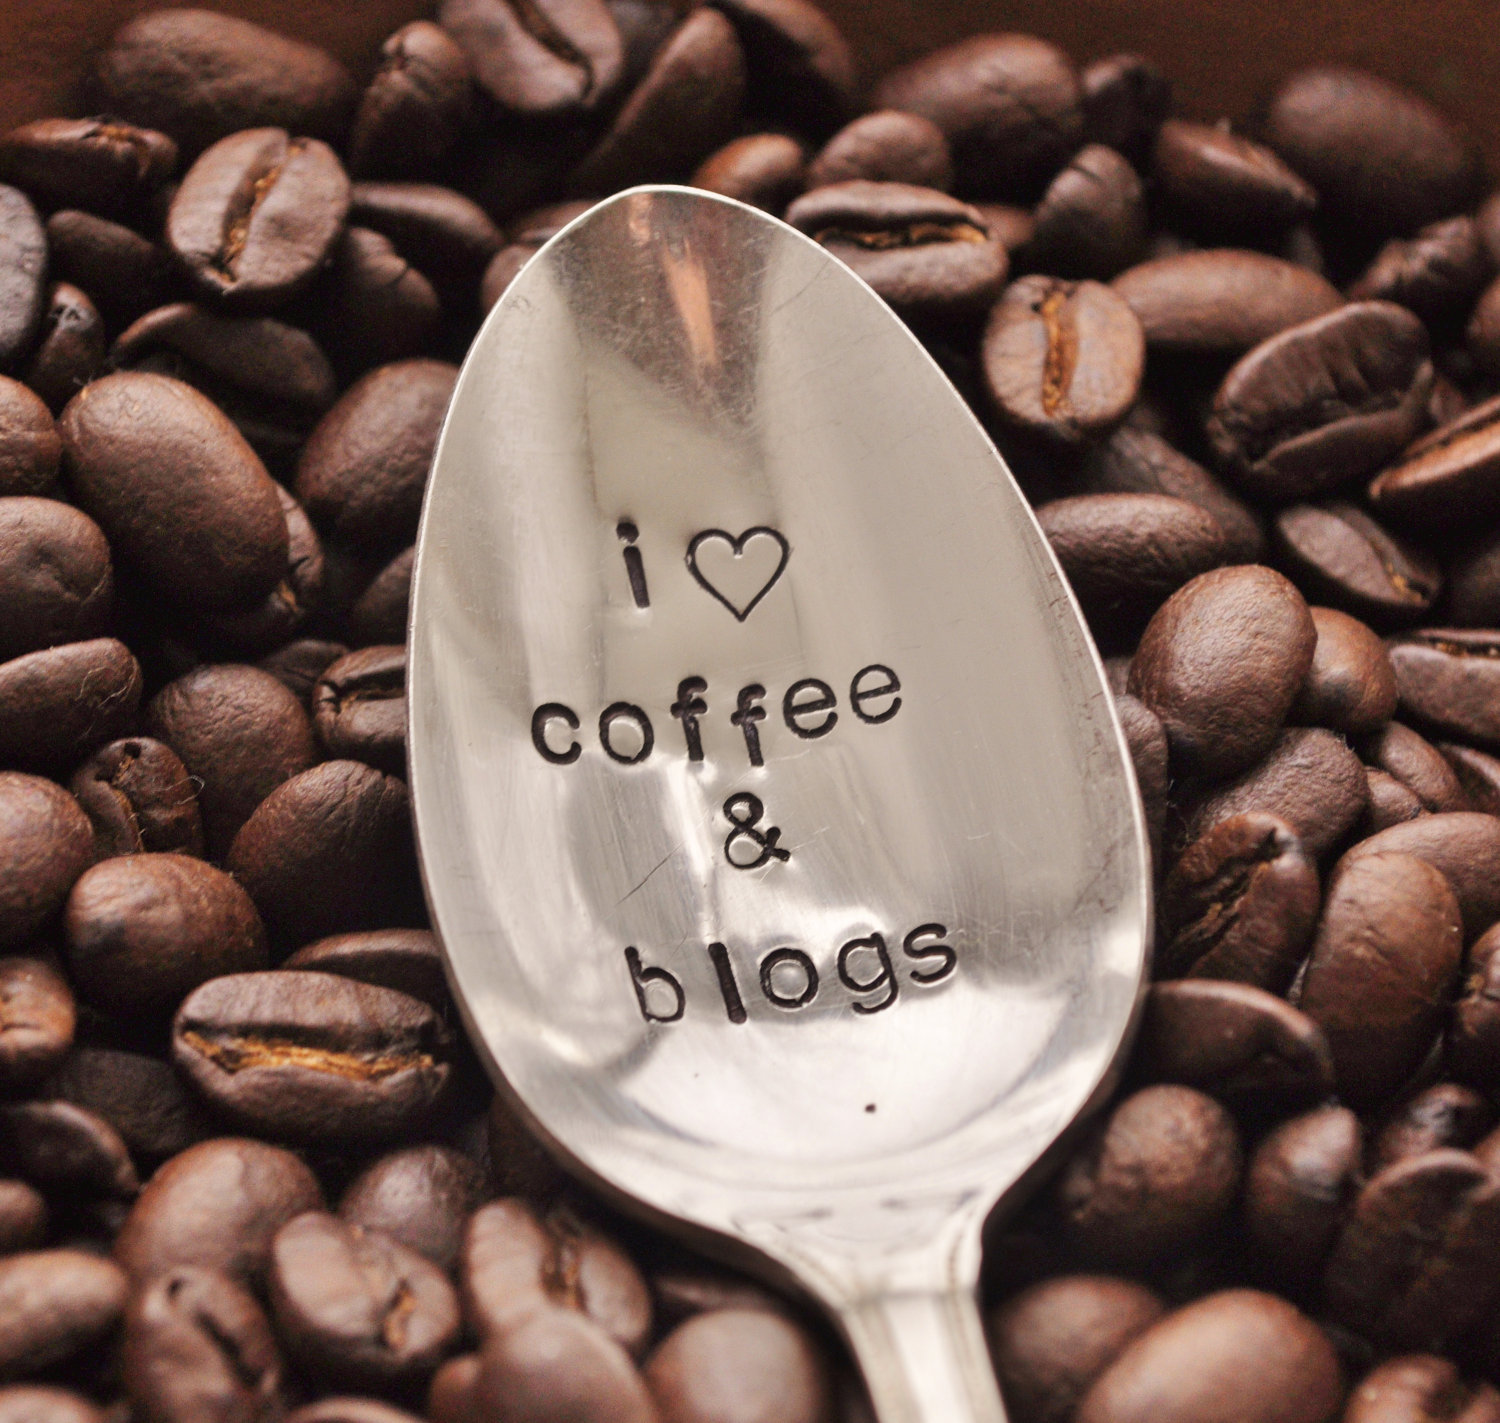 My 5 Favorite Coffee Blogs to Date